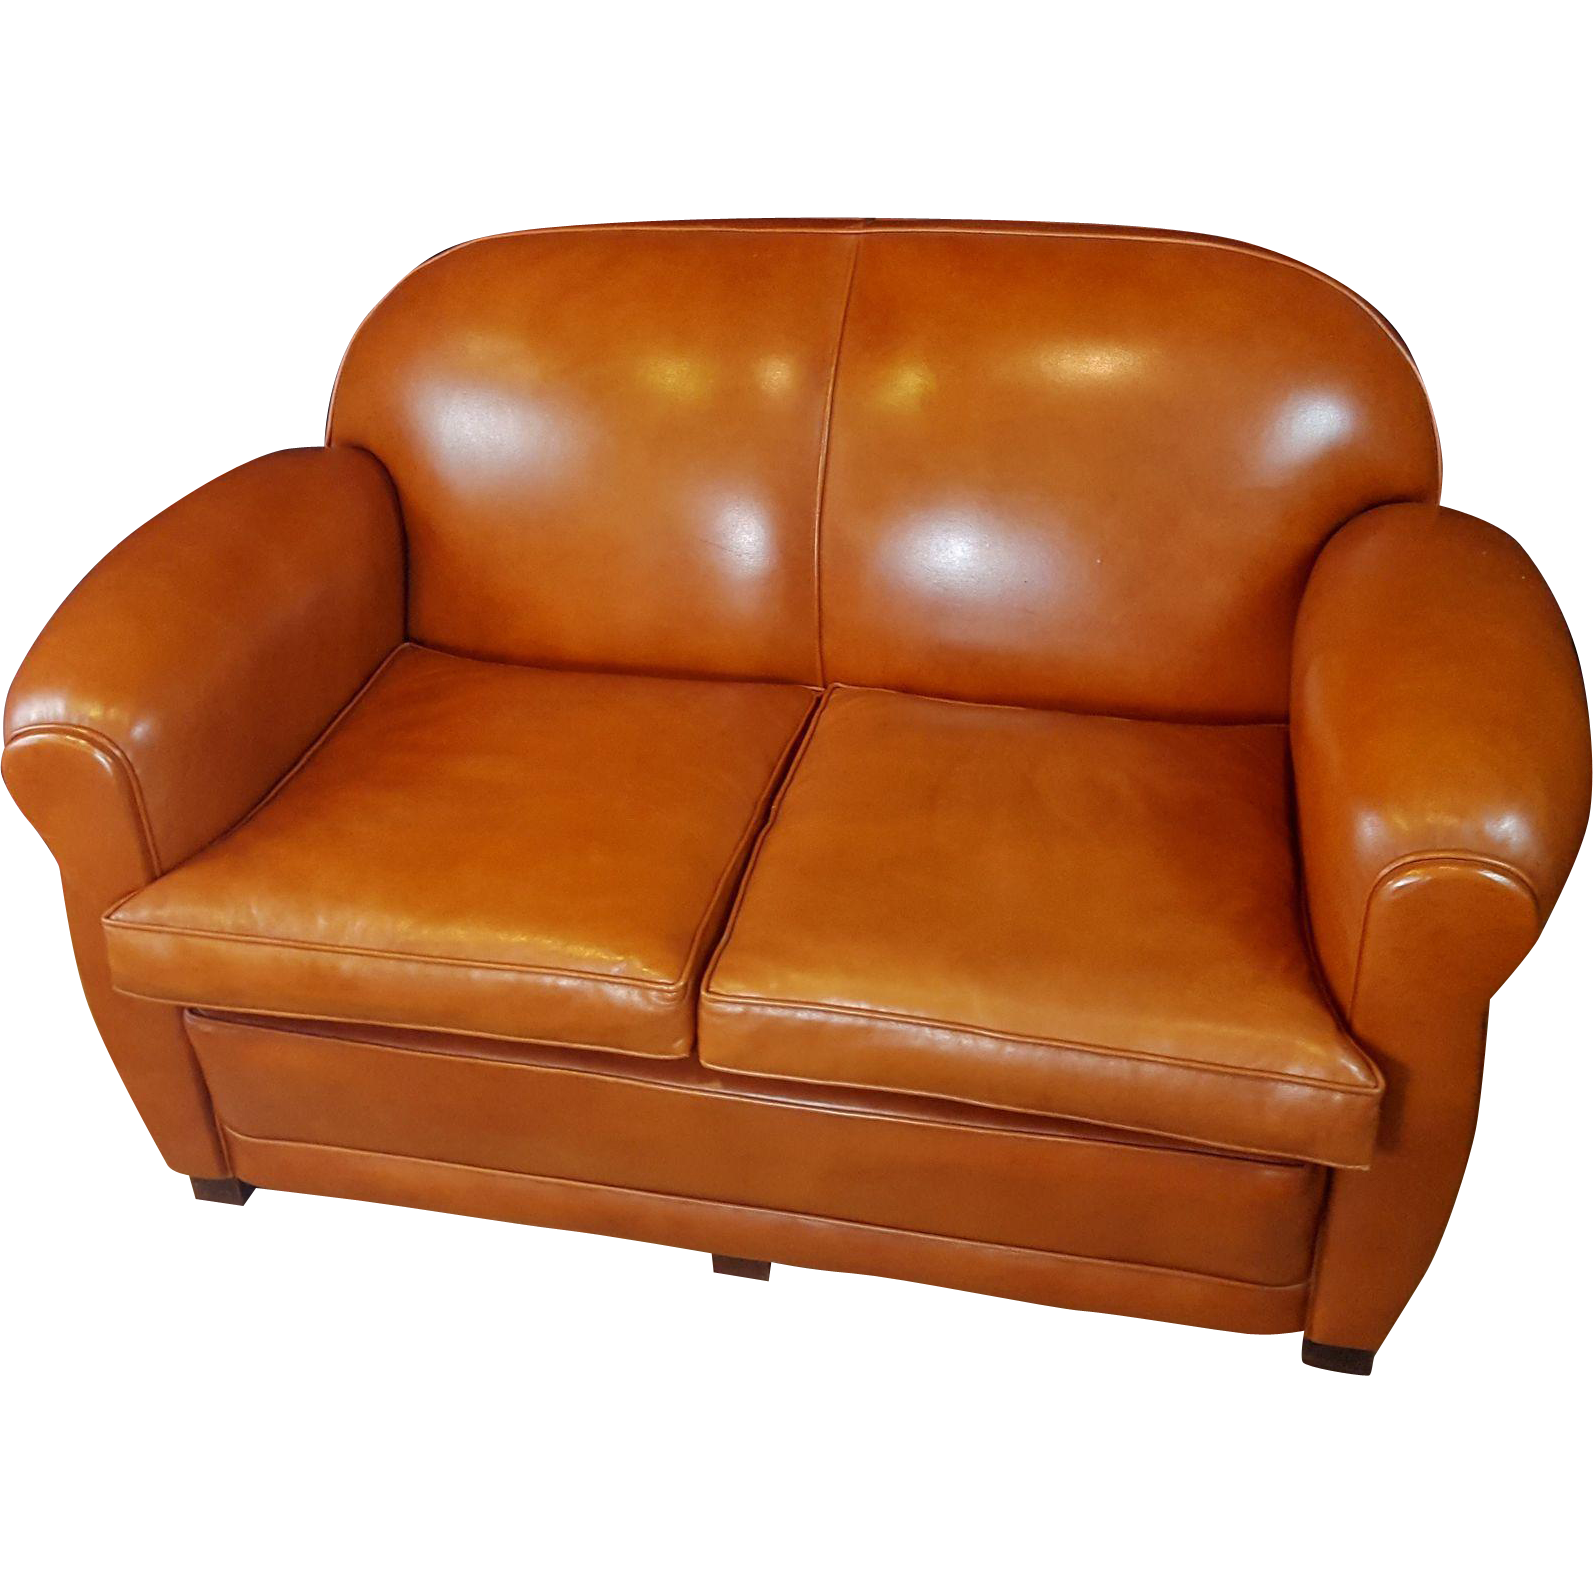 French Art Deco Leather Light Rusty Brown Club Style Two Seat Love Seat Couch Sofa